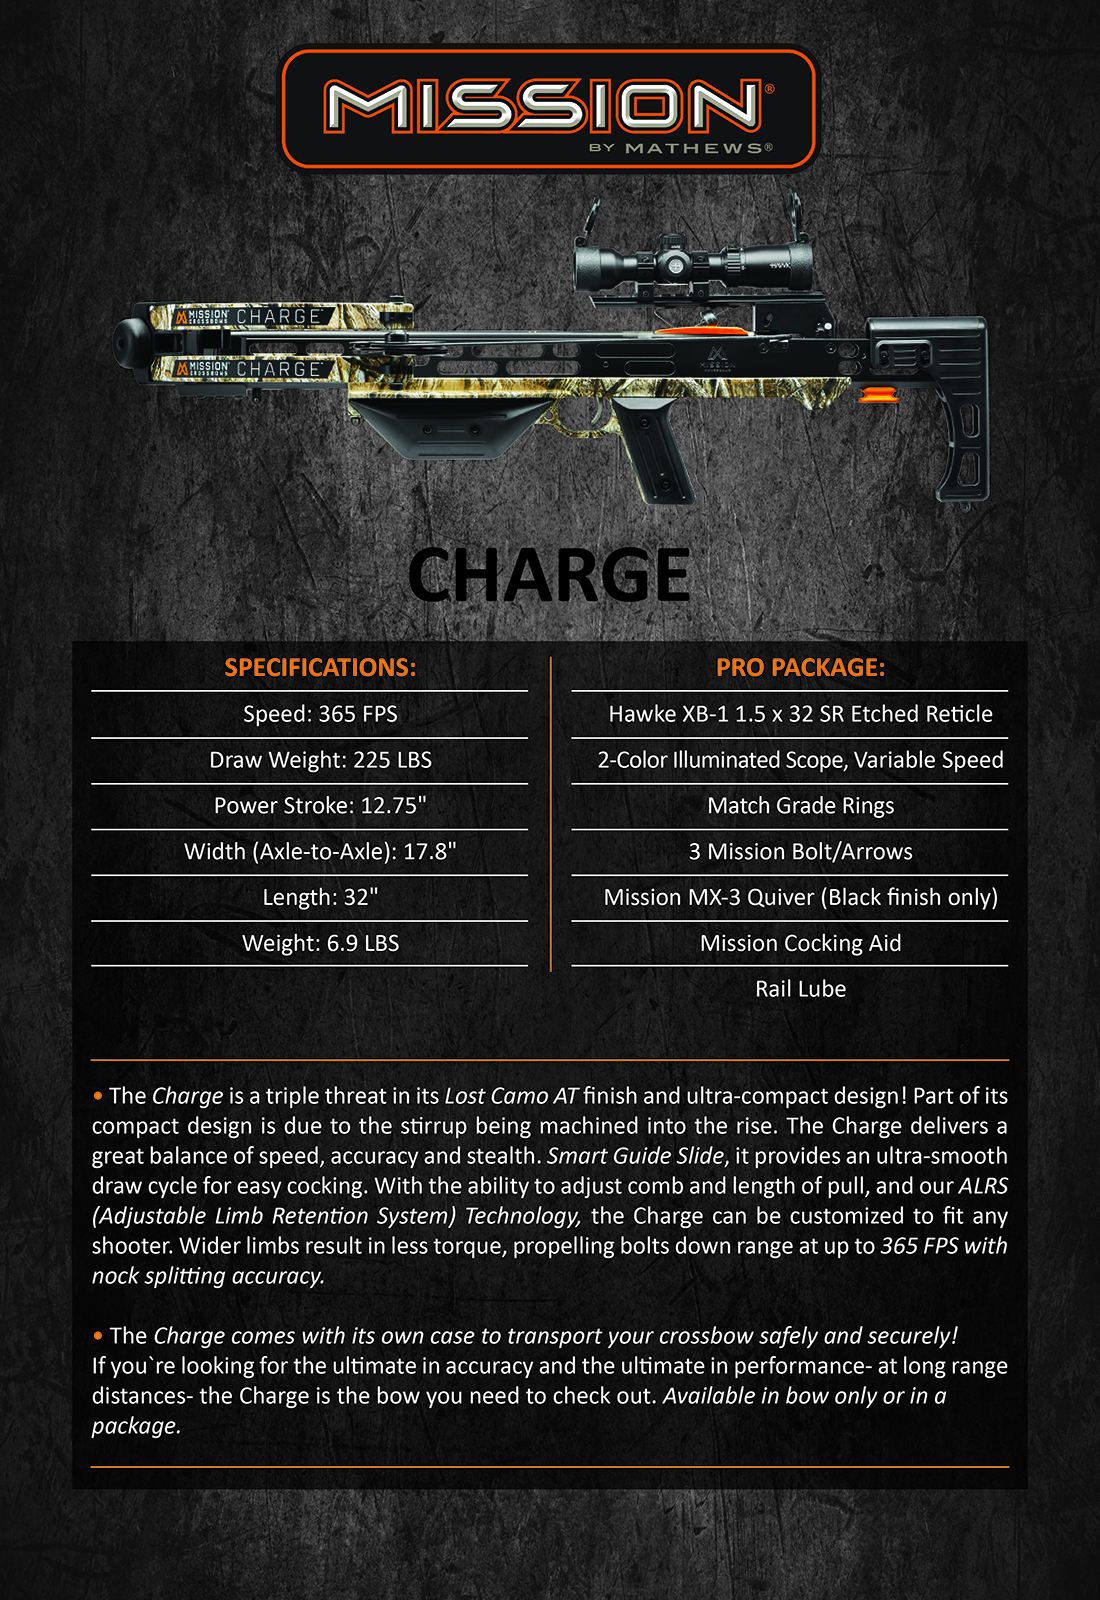 Mission Charge Product Description